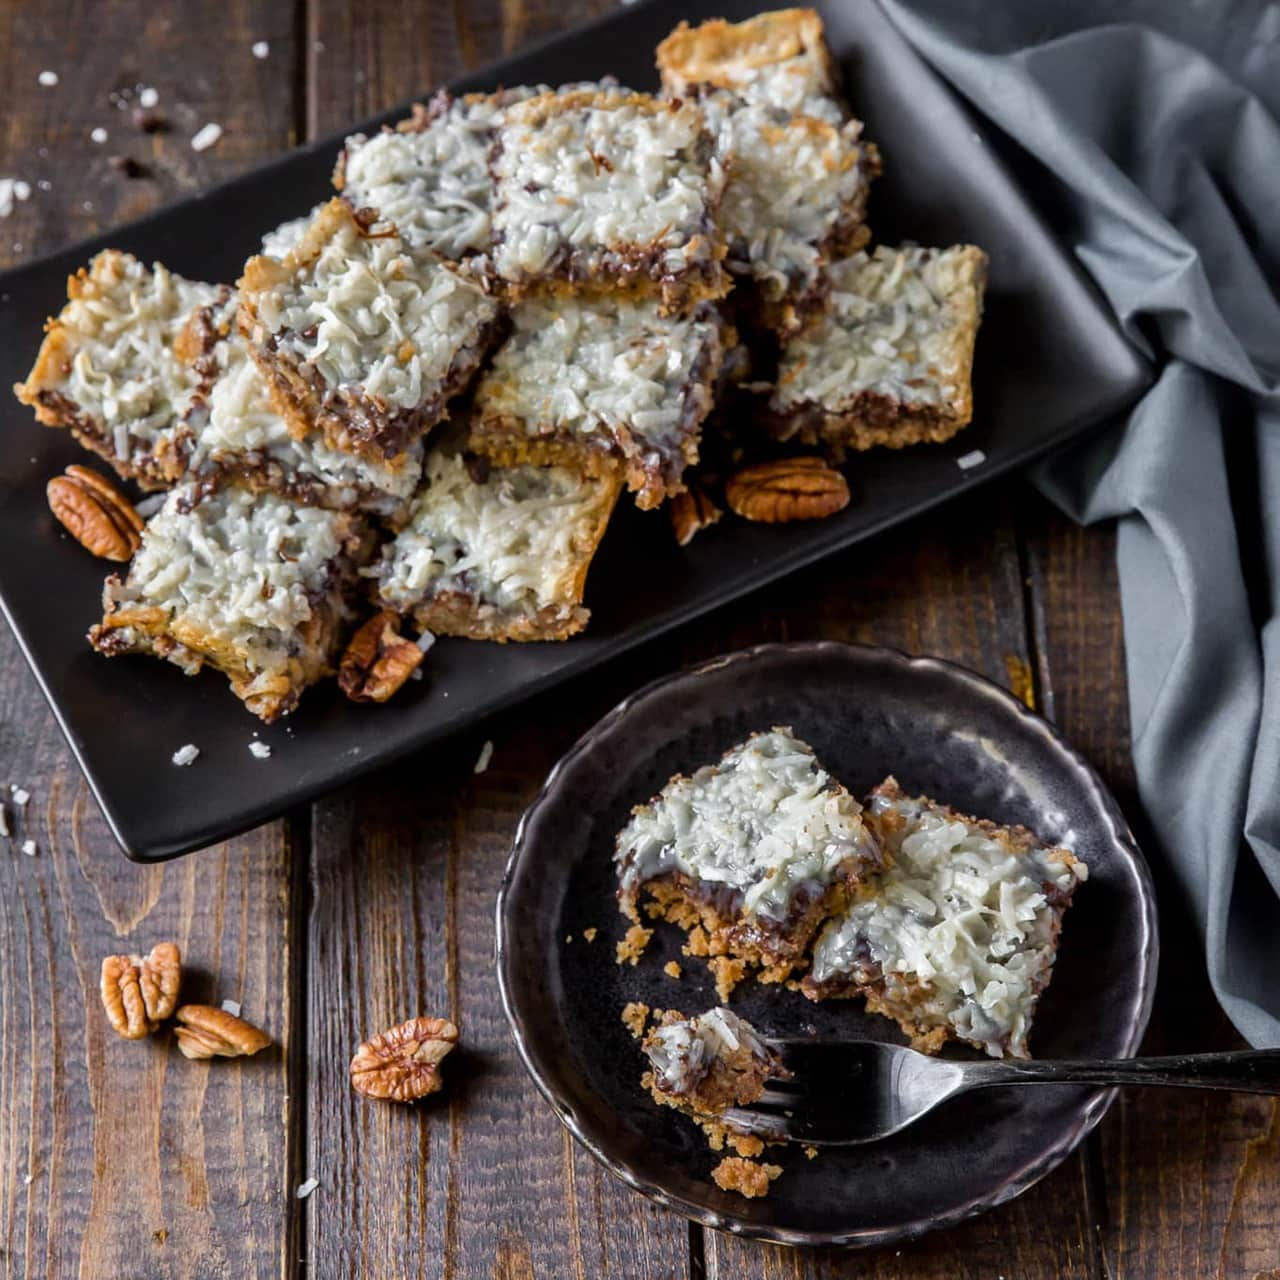 This Hello Dolly Bars recipe (also known as Magic Cookie Bars) is a delicious, family favorite dessert to make and share during the holidays with a buttery graham cracker crust topped with pecans, chocolate chips, coconut and sweetened, condensed milk.